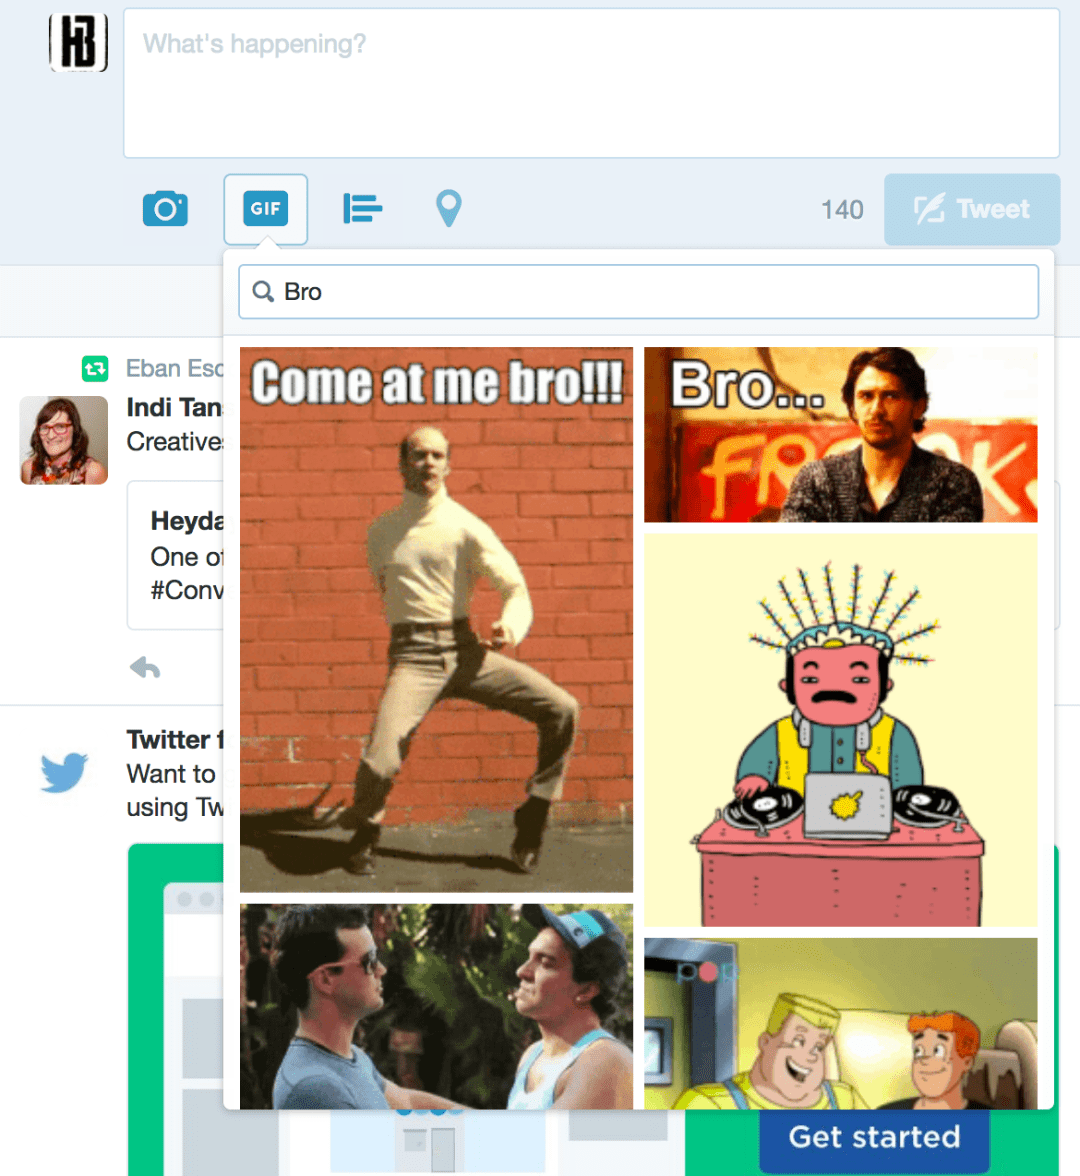 Twitter GIF Feature